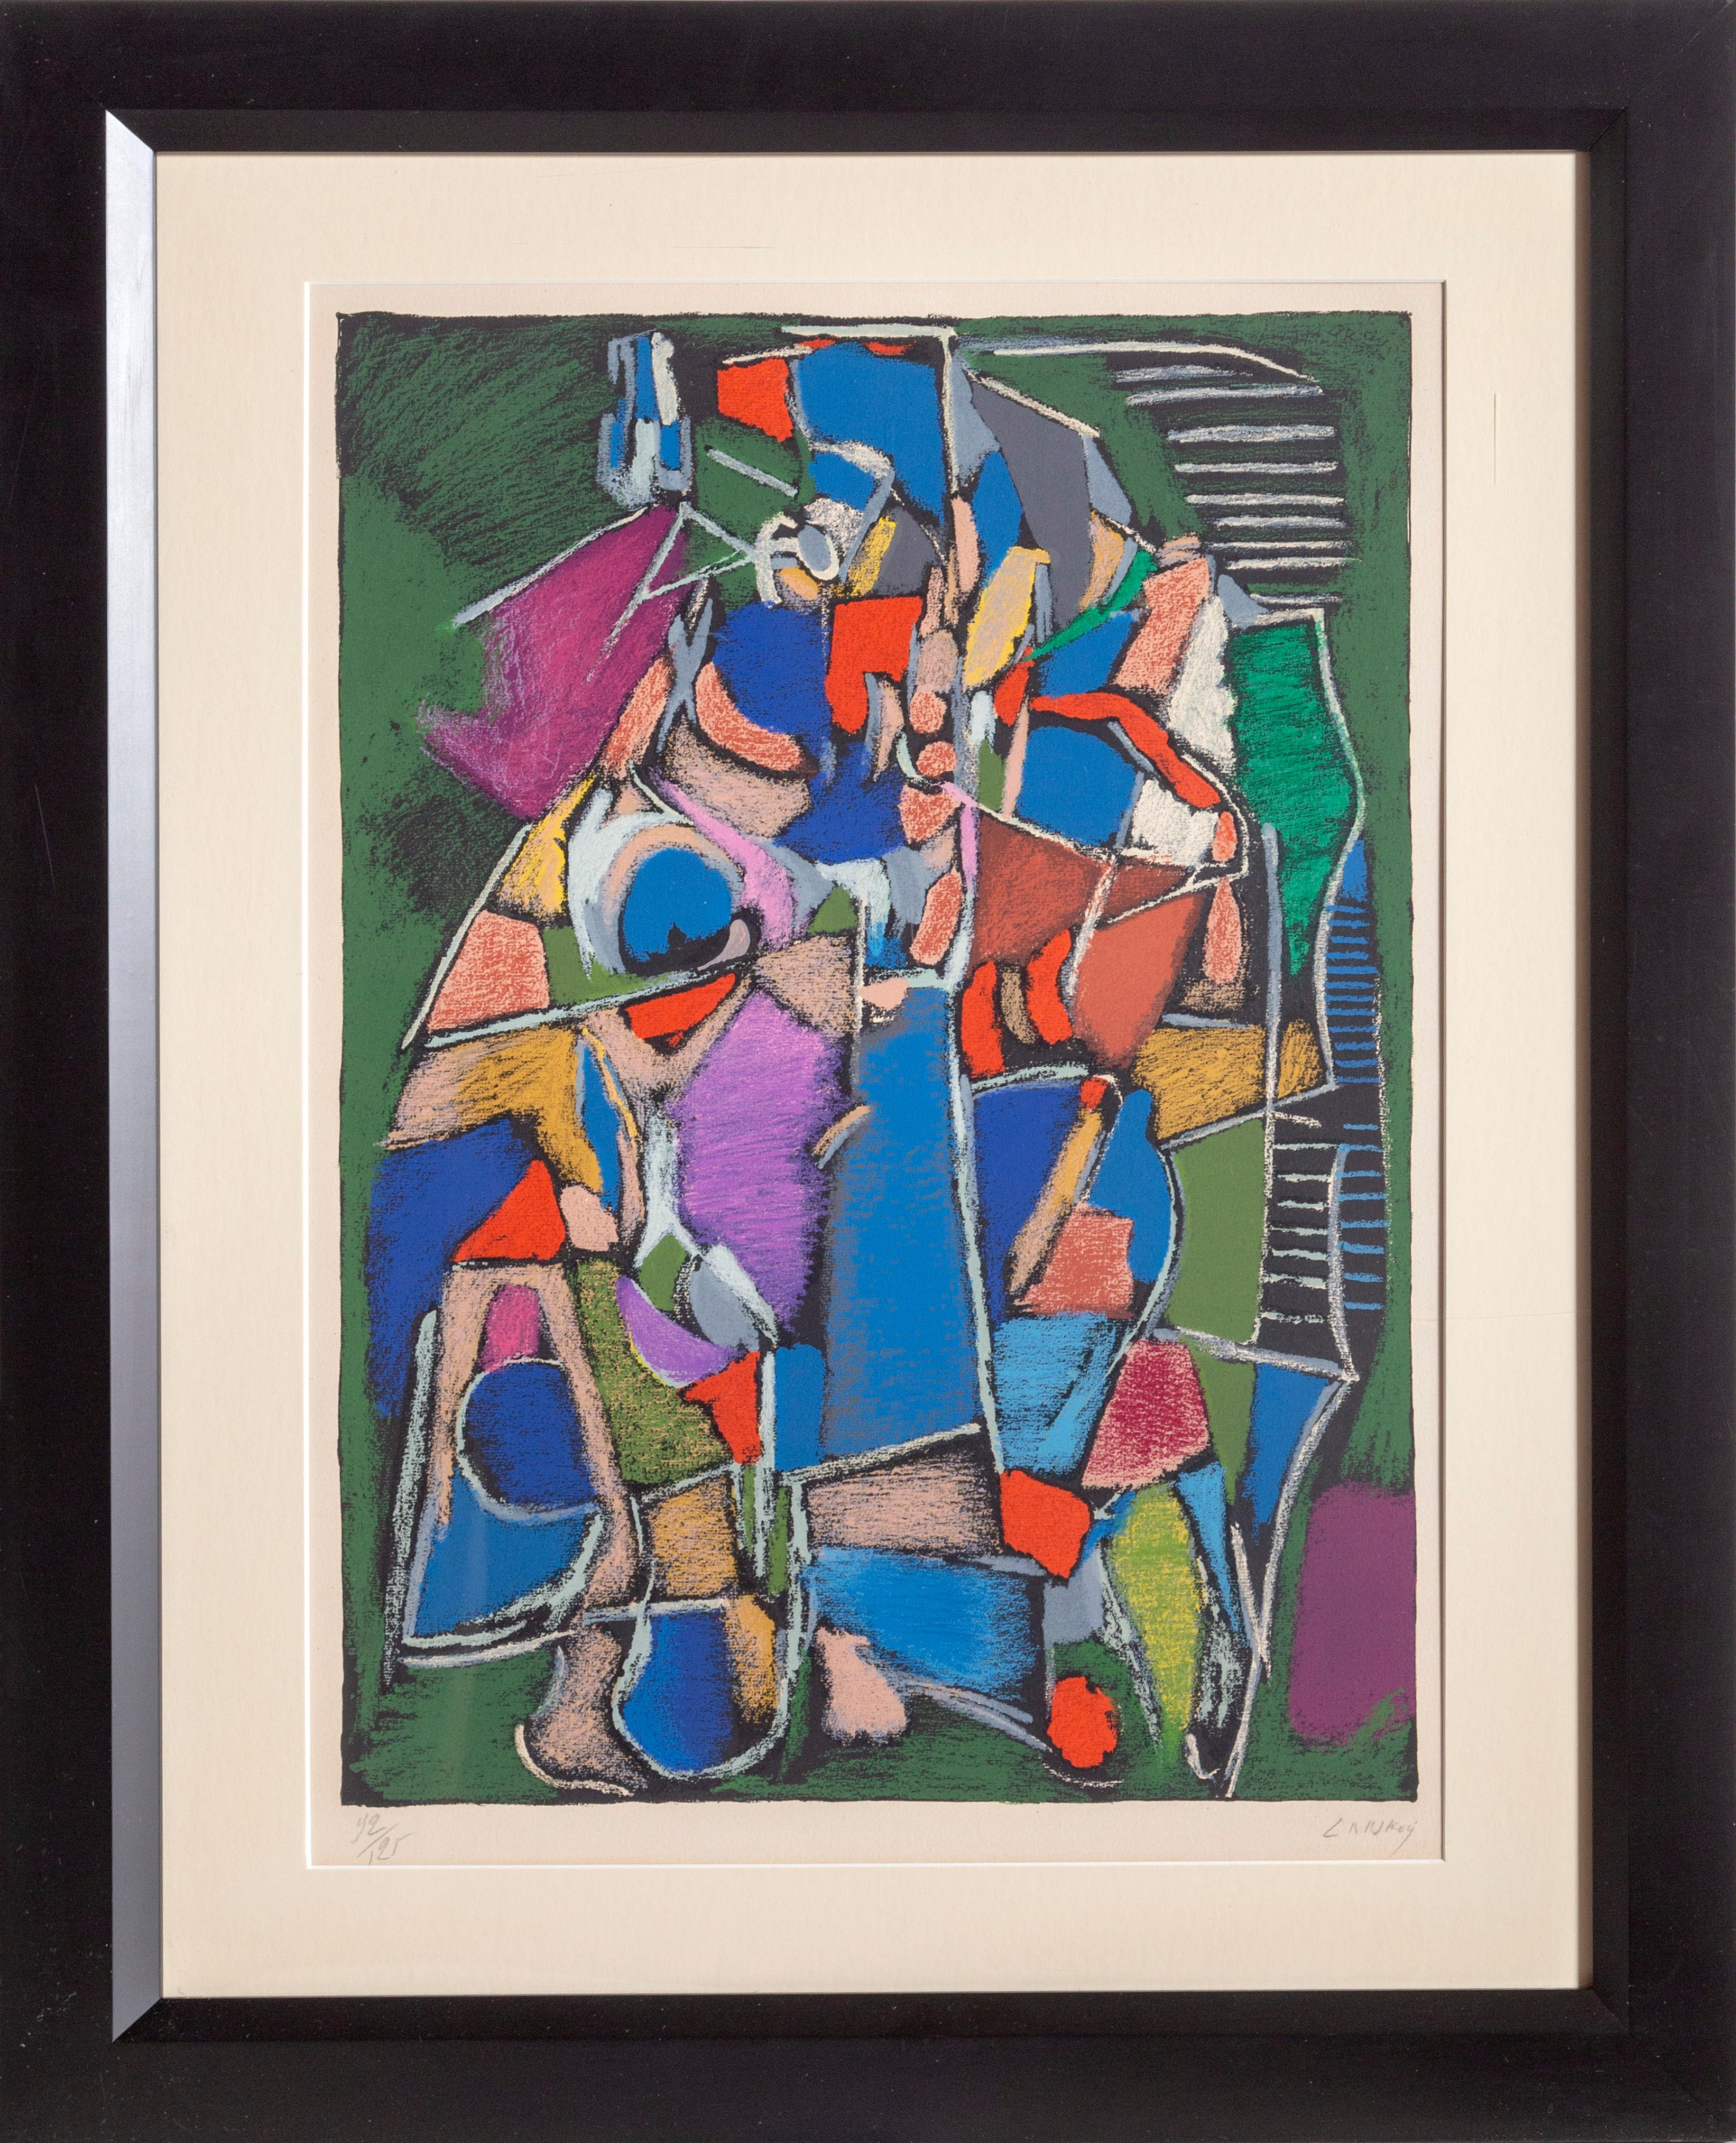 Tachisme, Abstract Modern Lithograph by Andre Lanskoy